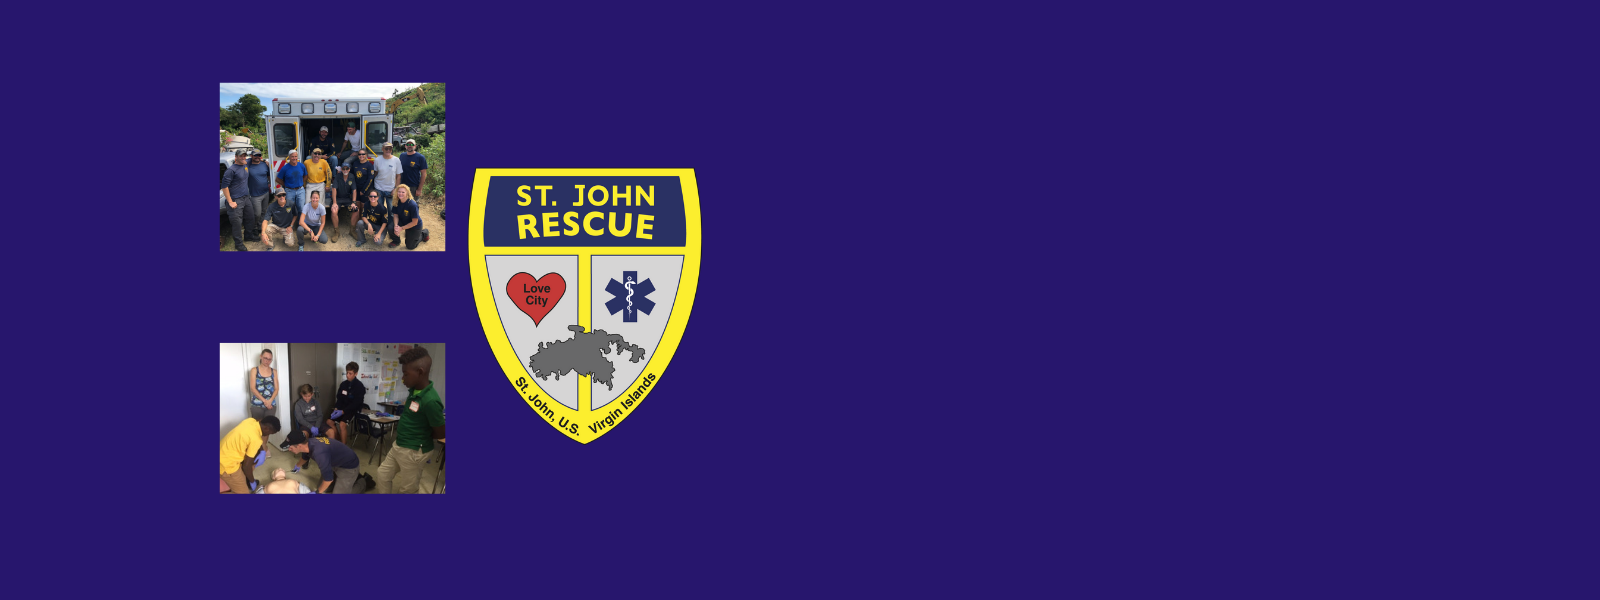 St. John Rescue is on call for life! image